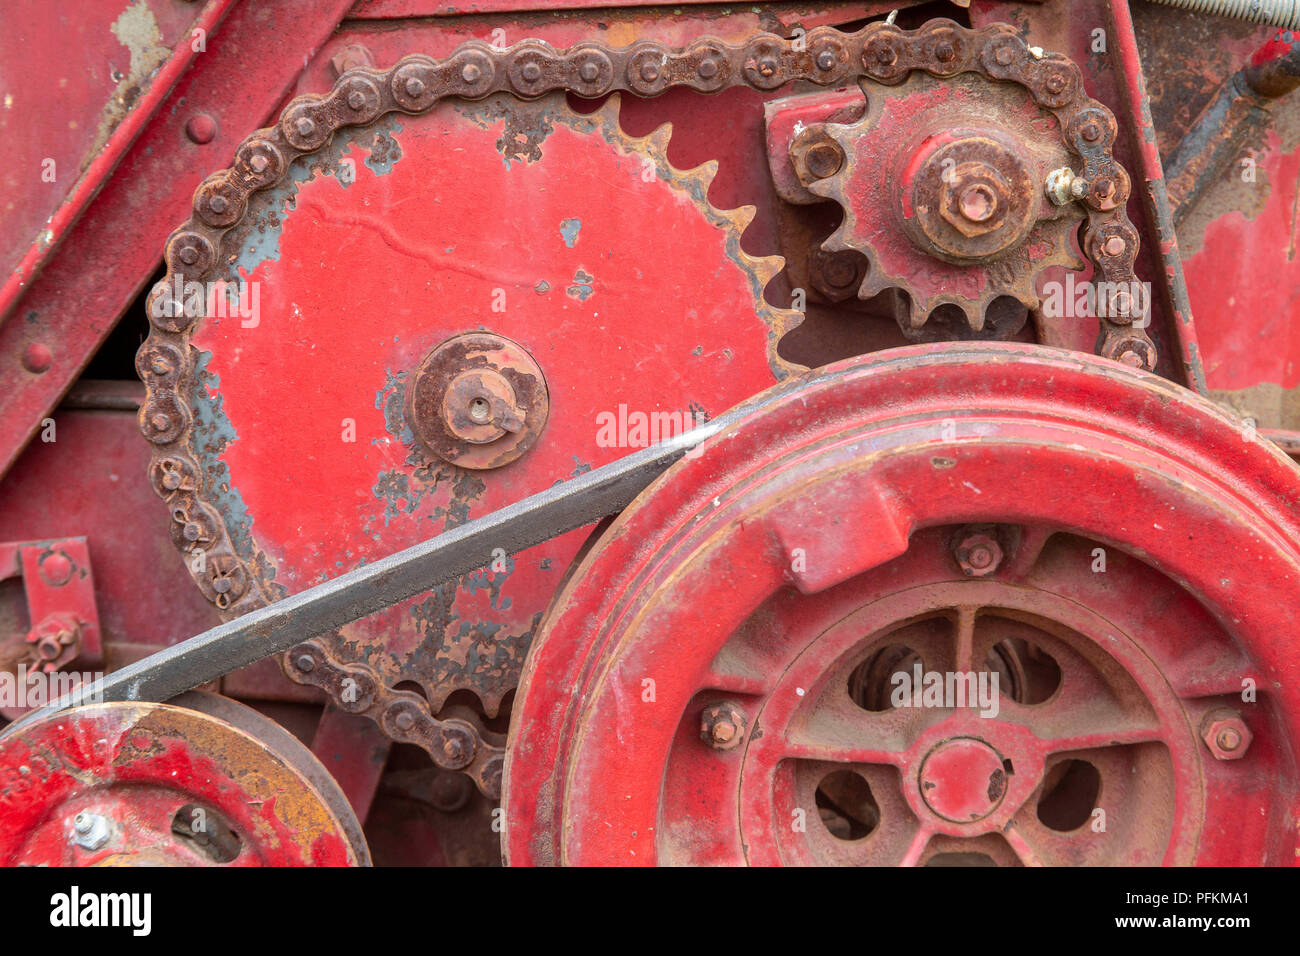 Tractor gears and belts - Stock Image